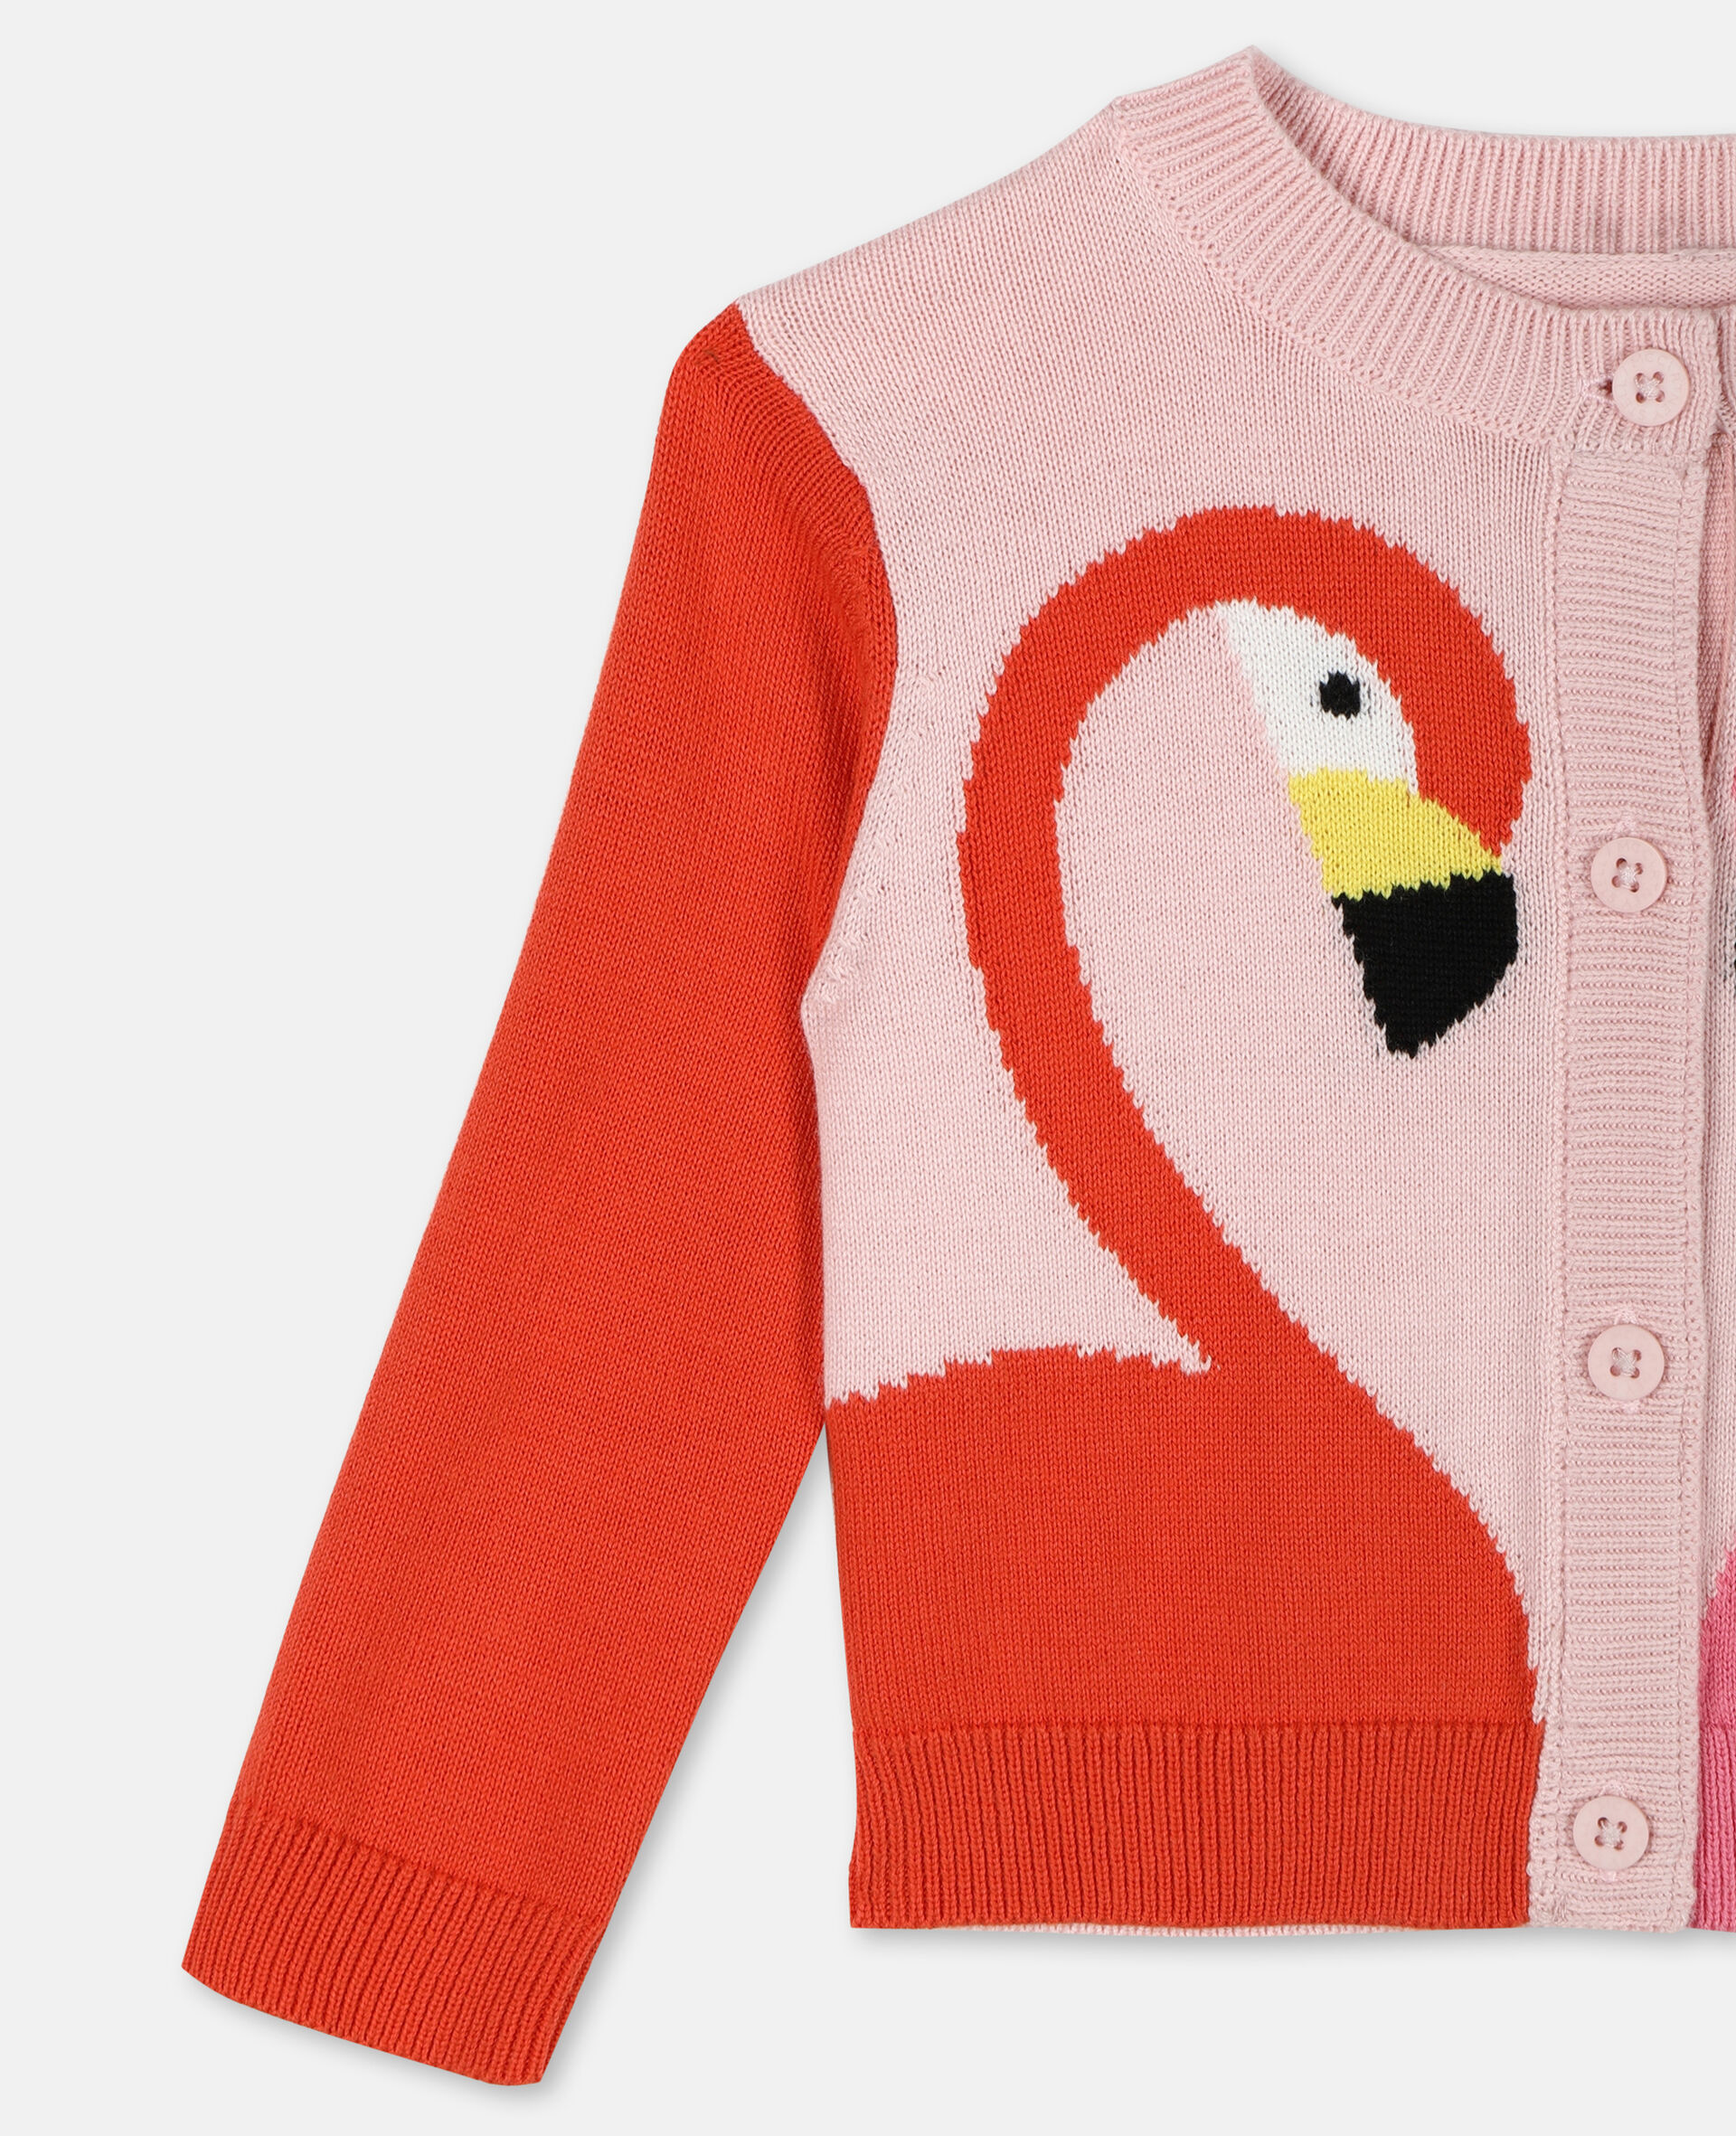 Flamingo Intarsia Knit Cotton Cardigan -Pink-large image number 1